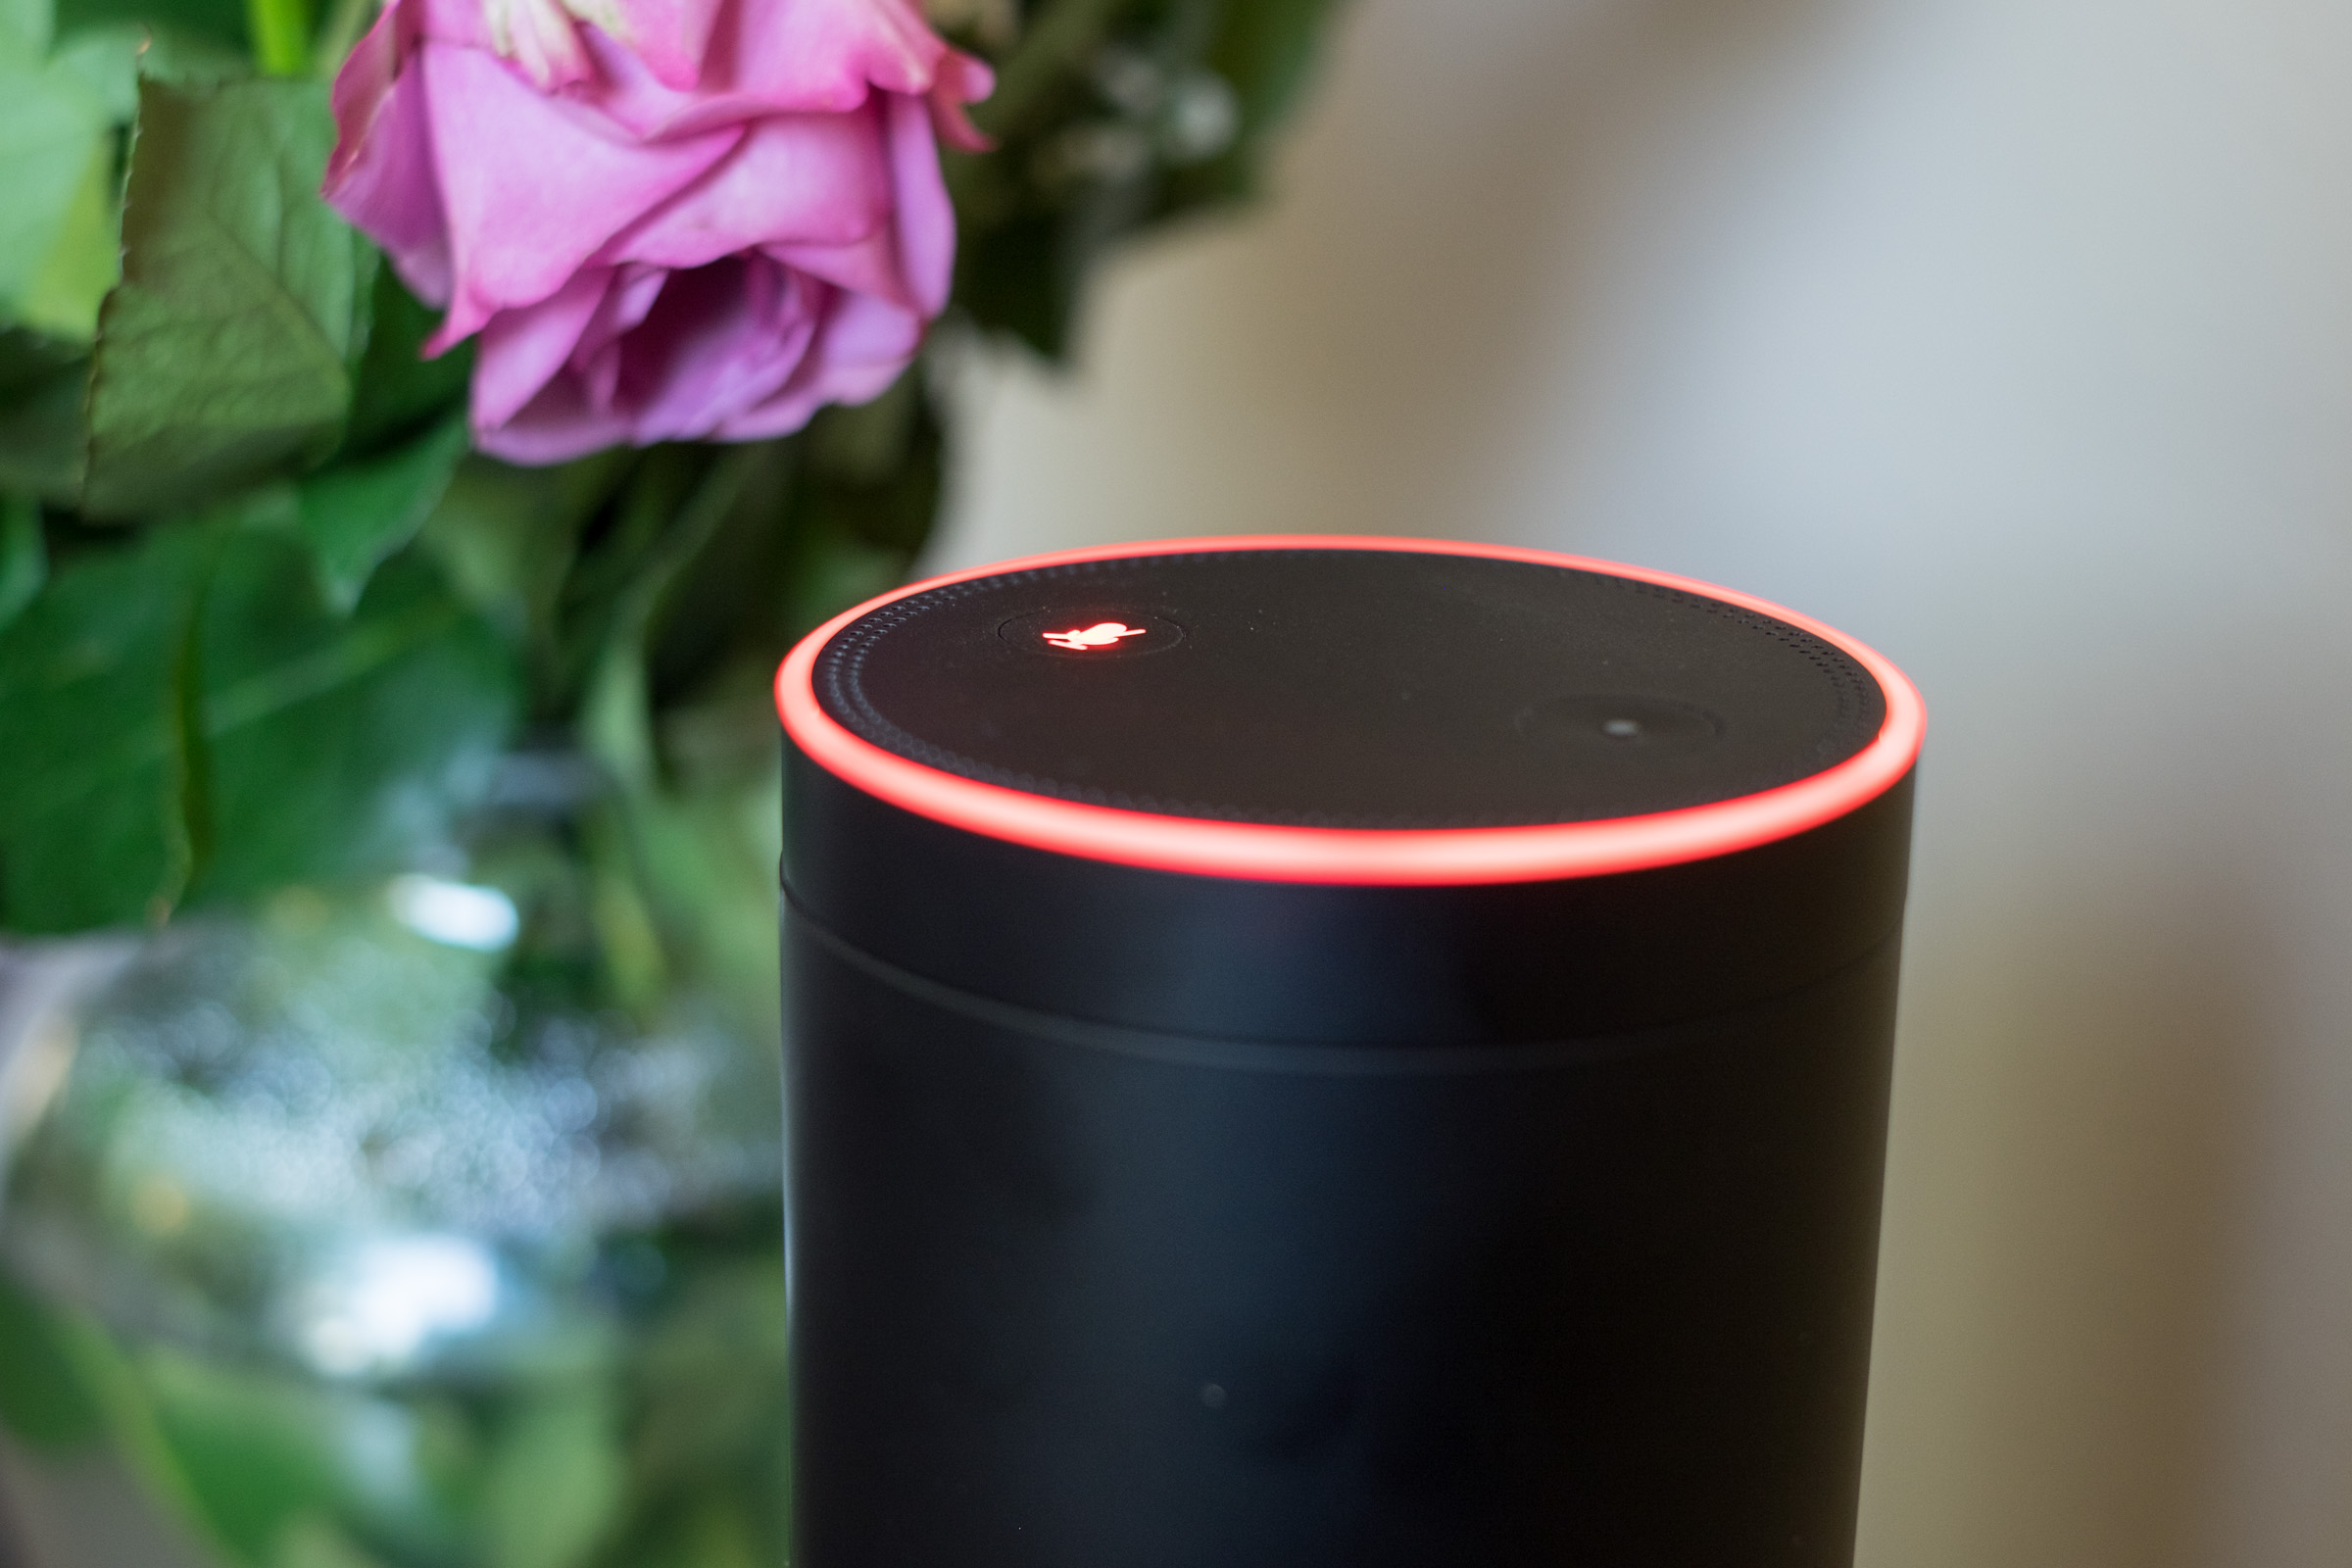 Amazon Echo with its microphone disabled.